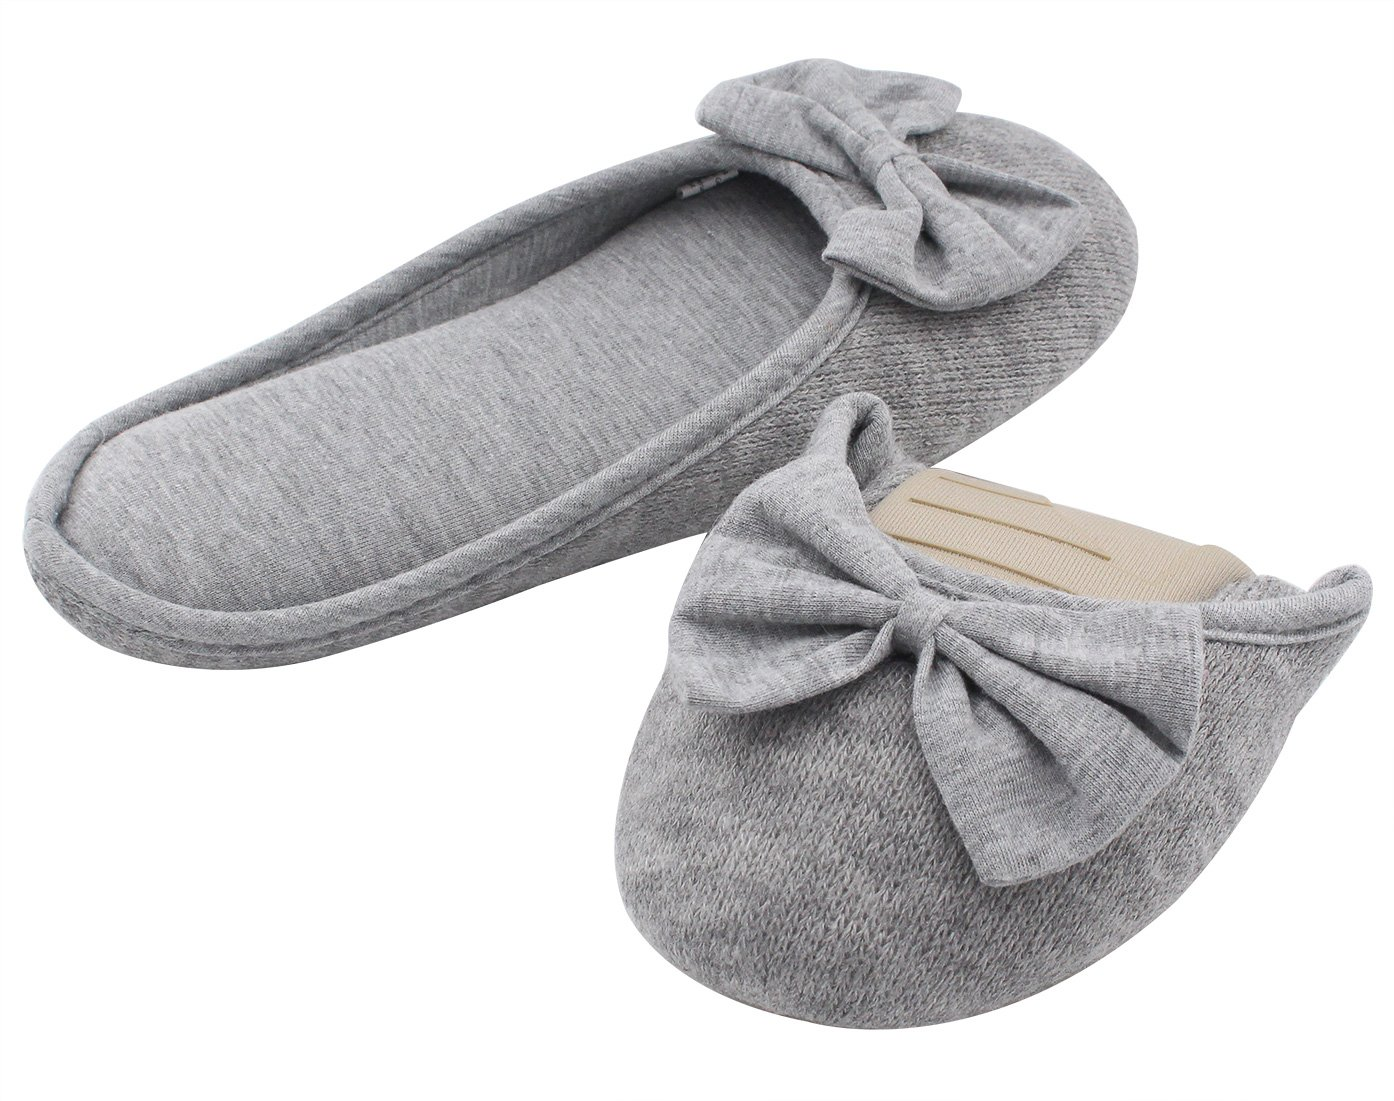 HomeTop Women's Cozy Cashmere Cotton Closed Toe House Slippers with Cute Bow Accent (Small/5-6 B(M) US, Gray)